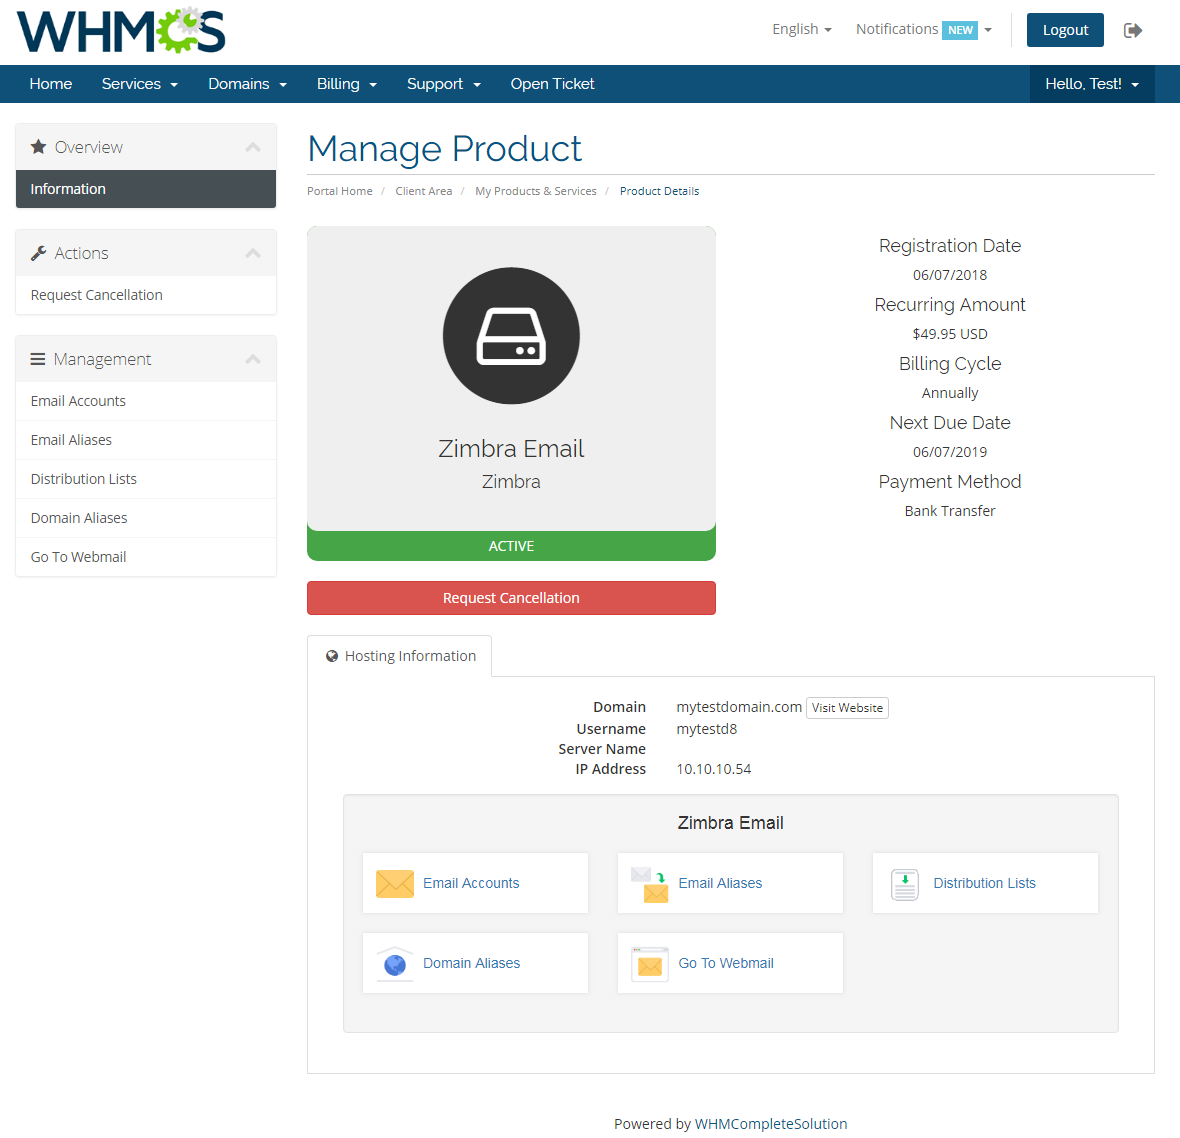 Zimbra Email For WHMCS: Screen 1